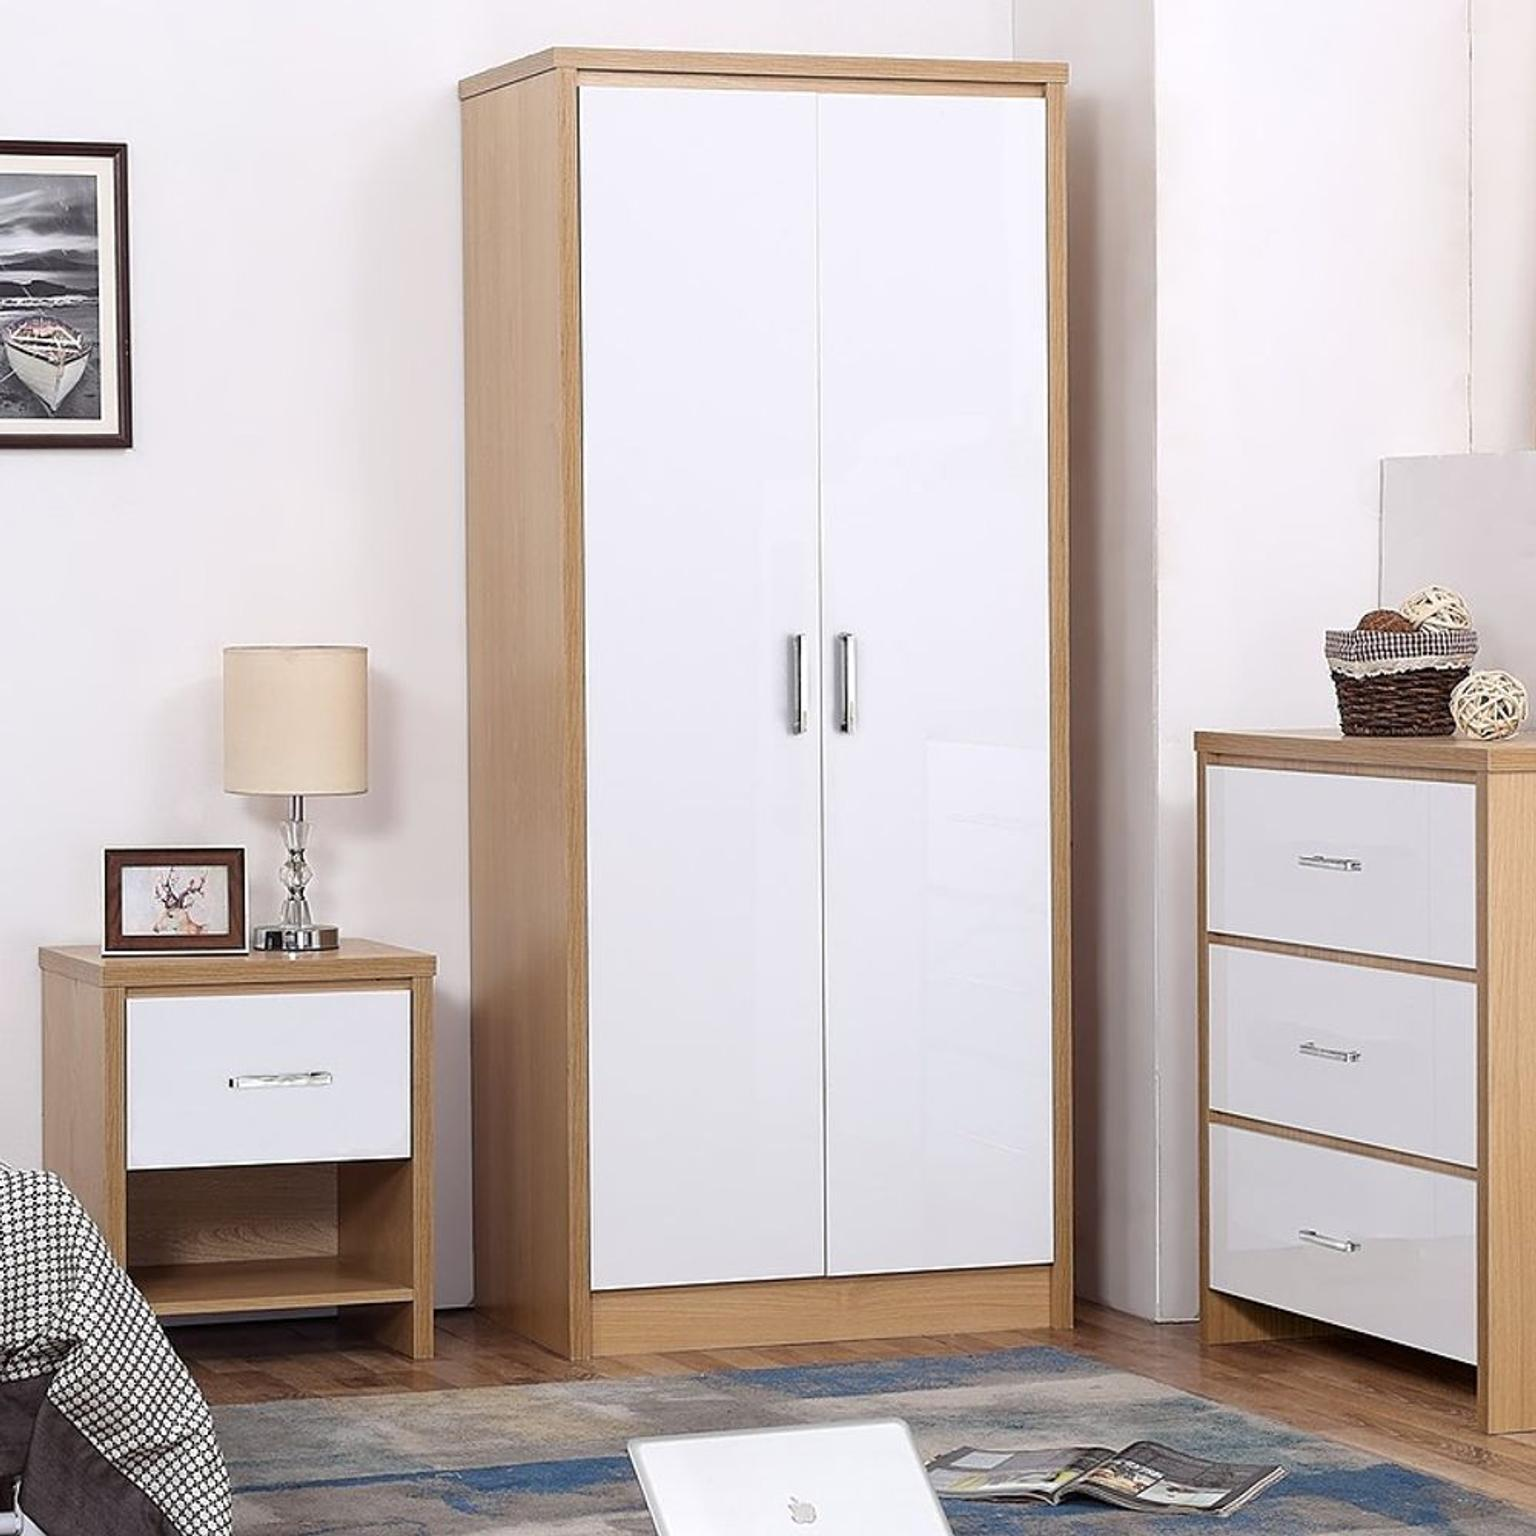 Harmin White Bedroom Furniture SET with Soft Close Doors /& High Gloss Fronts